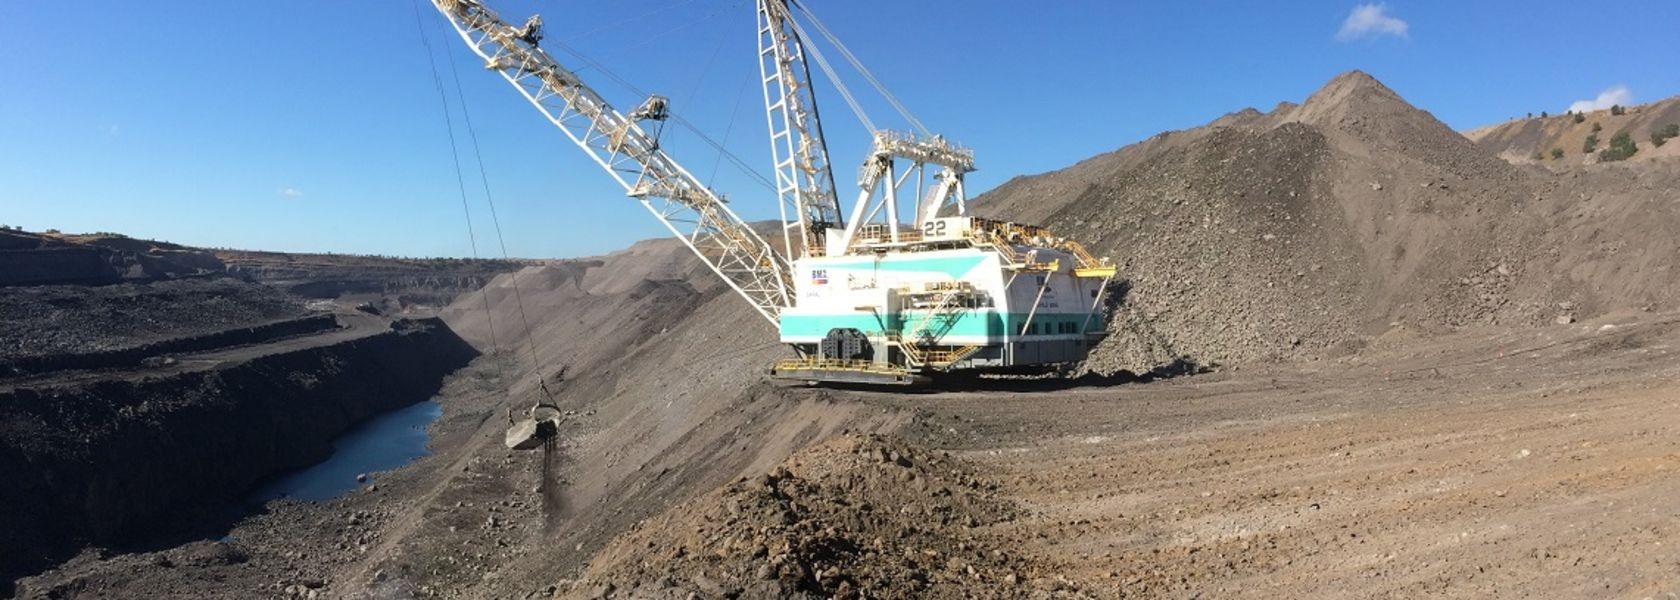 Saraji draglines achieve record weekly production